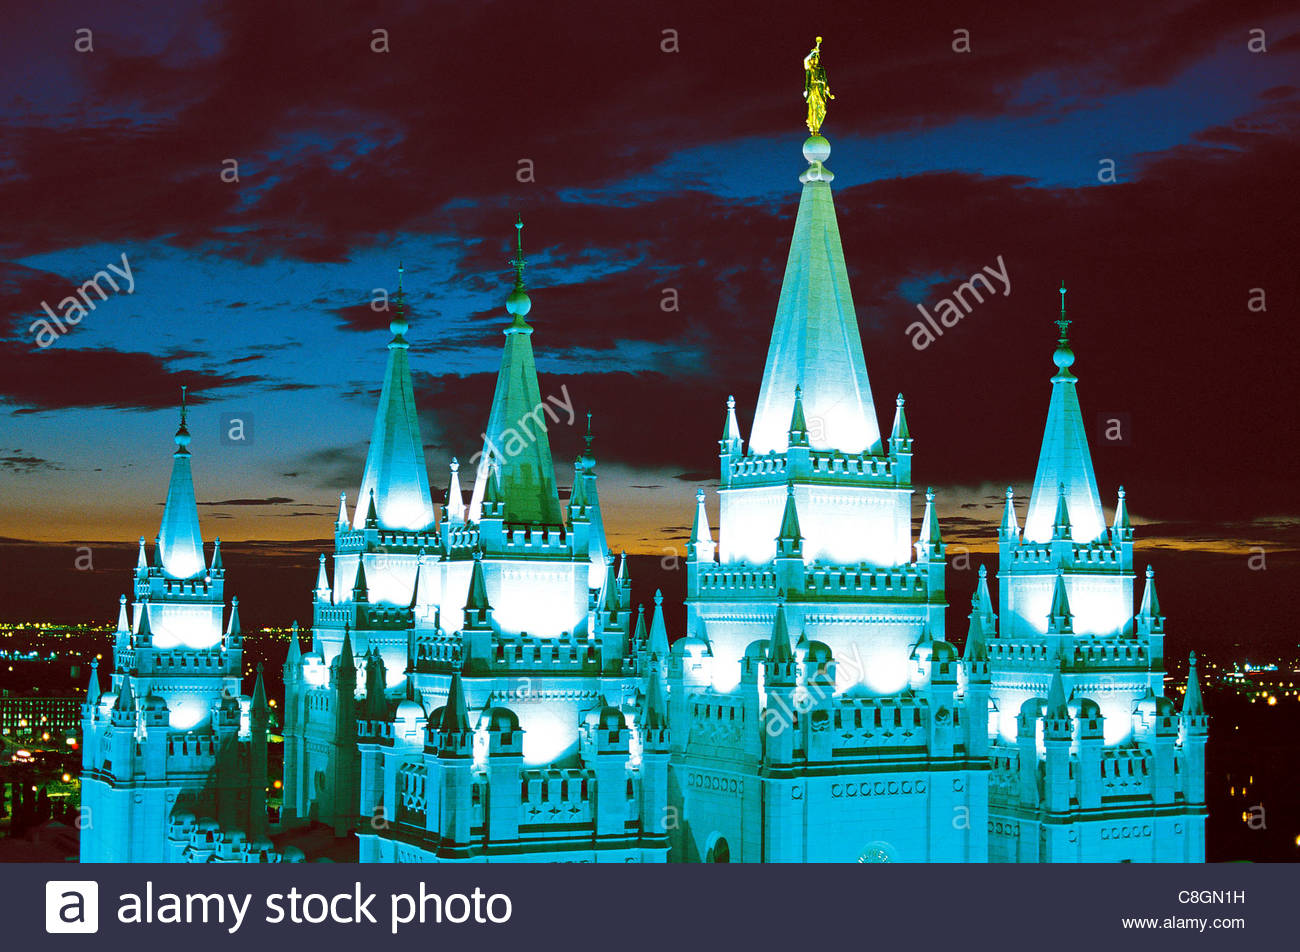 An overview of the top of the Mormon Tabernacle Church in the evening. - Stock Image